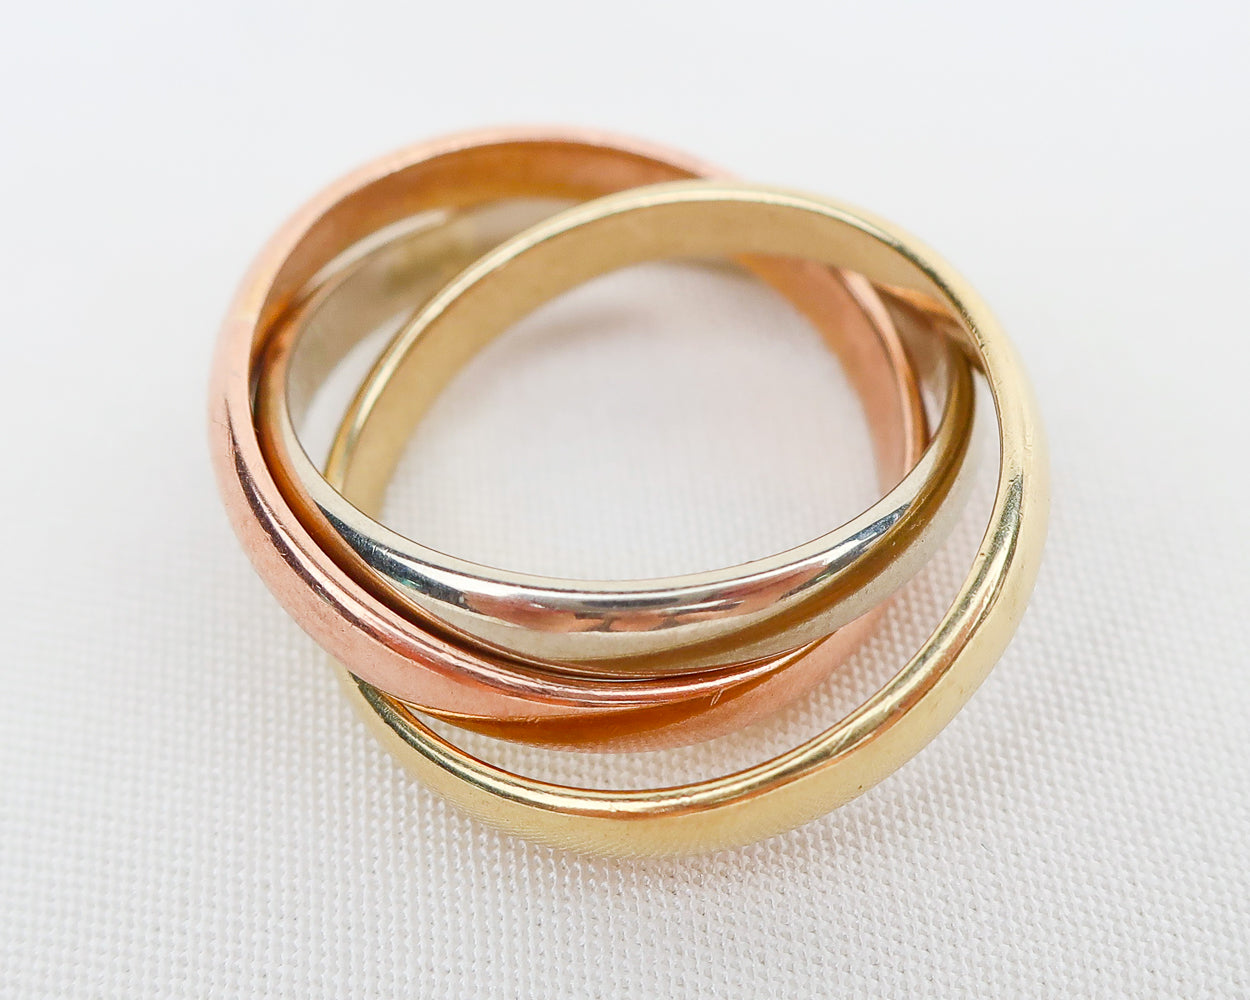 Vintage Three-Ring Mixed-Metal Band